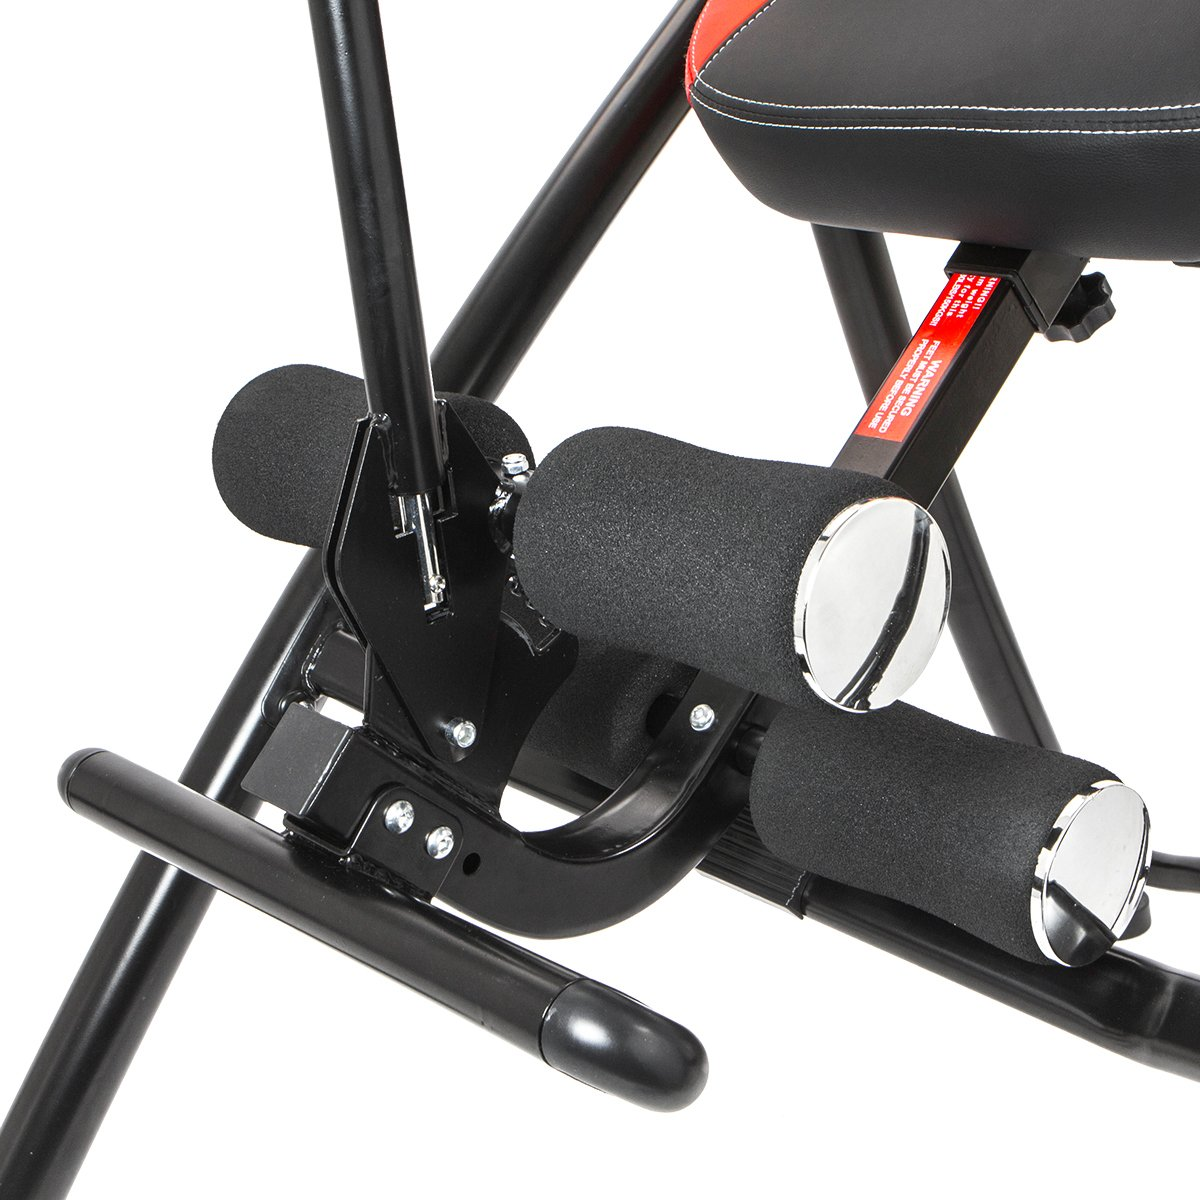 XtremepowerUS Gravity Inversion Therapy Table Fitness Back Pain Relief w/ Padded Backrest by XtremepowerUS (Image #6)